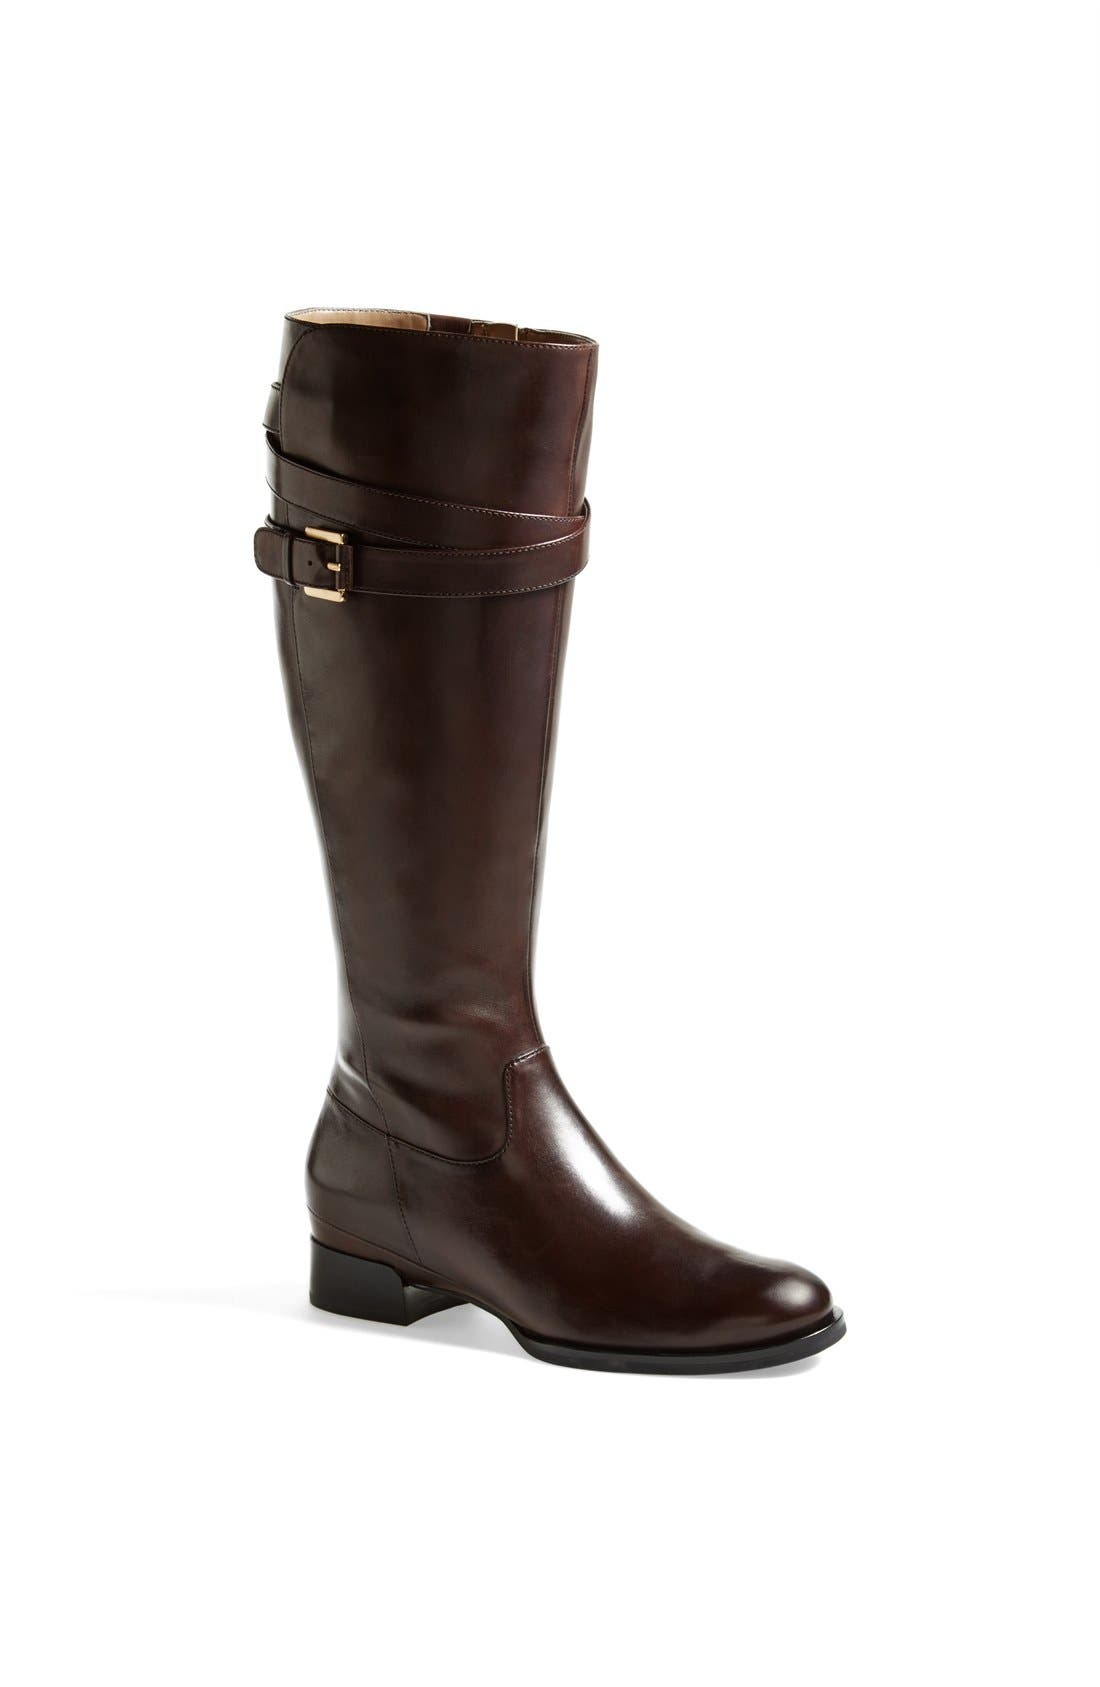 Main Image - ECCO 'Sullivan' Leather Boot (Women)